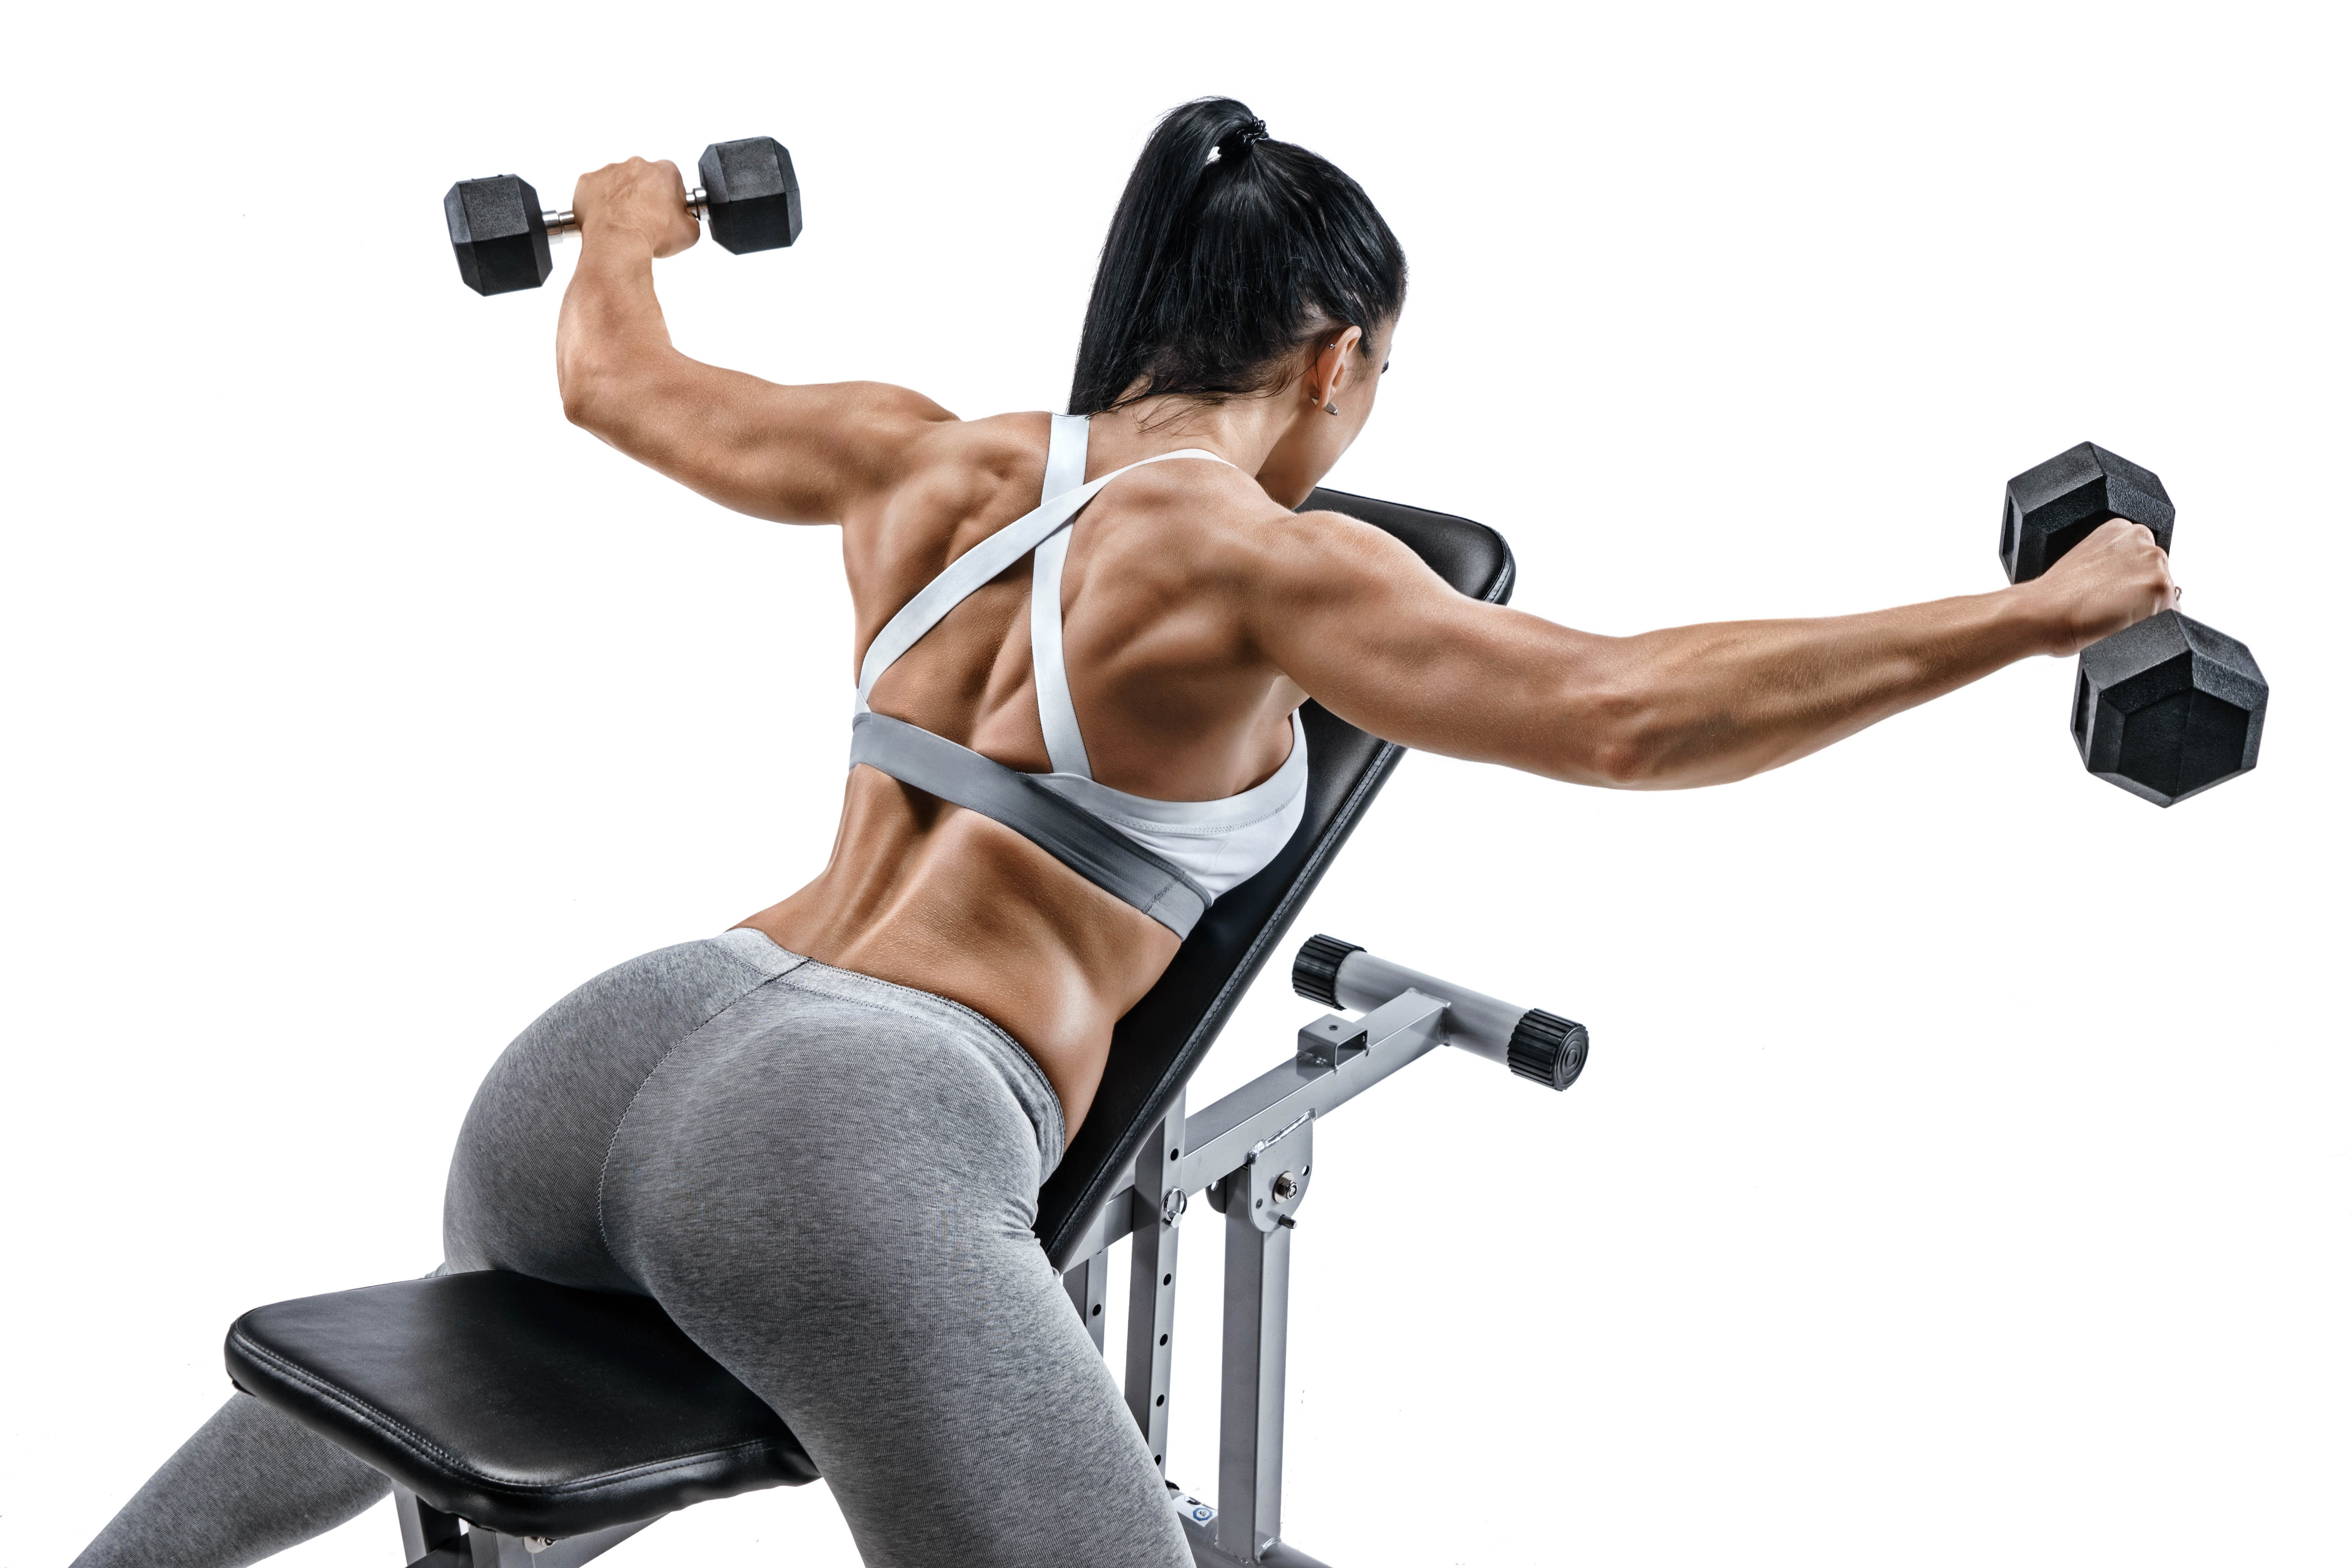 Mid-shrugs can be interesting alternative for typical shoulder press